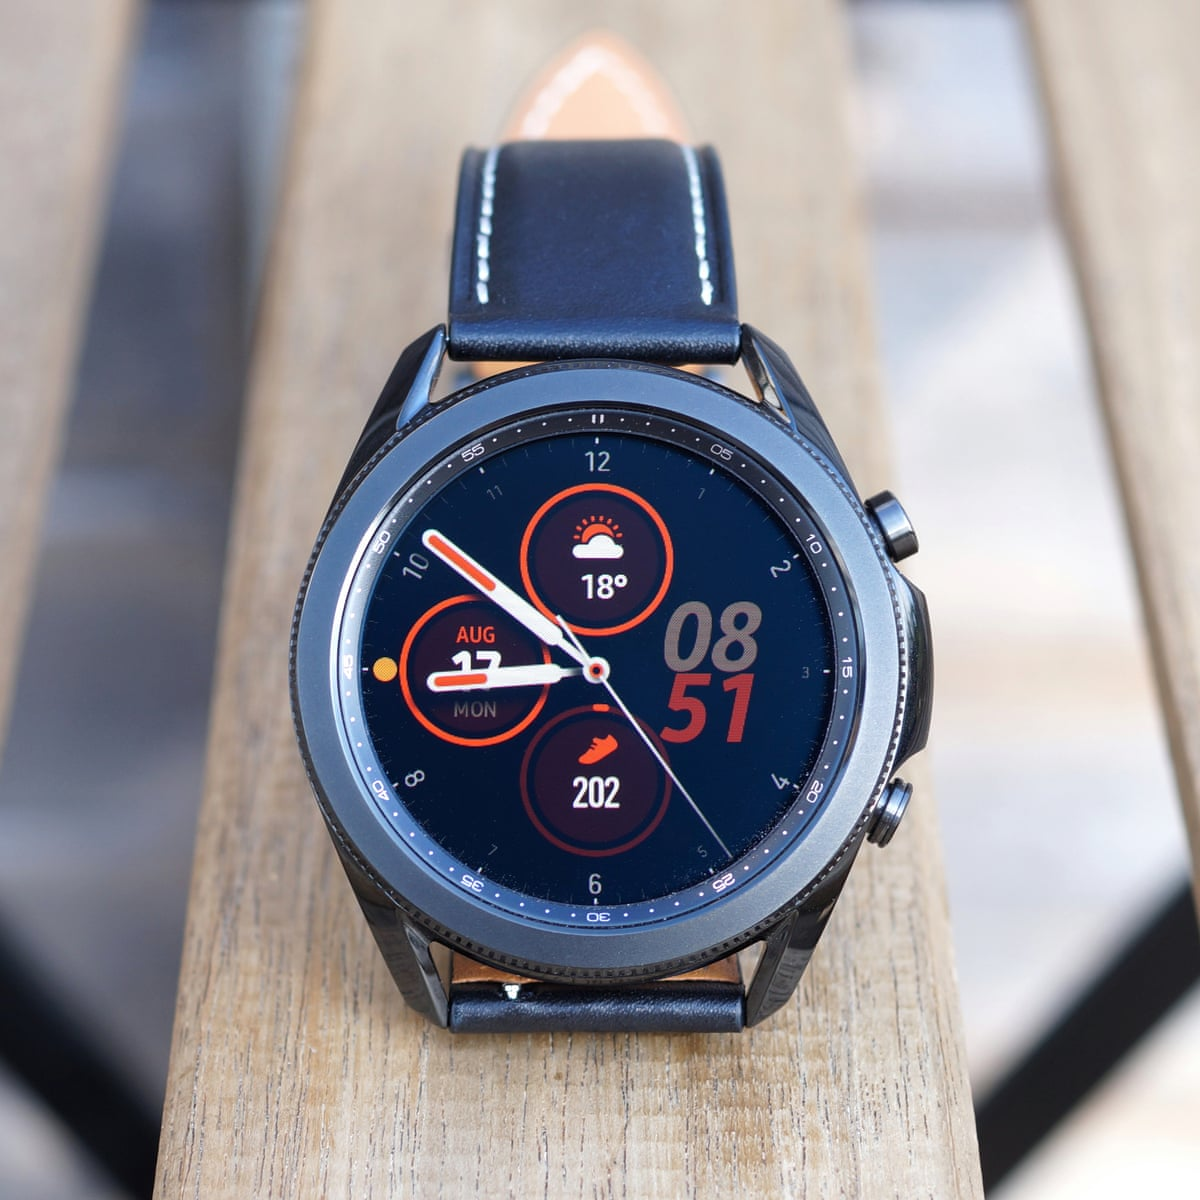 Samsung Galaxy Watch 3 Review The New King Of Android Smartwatches Samsung The Guardian